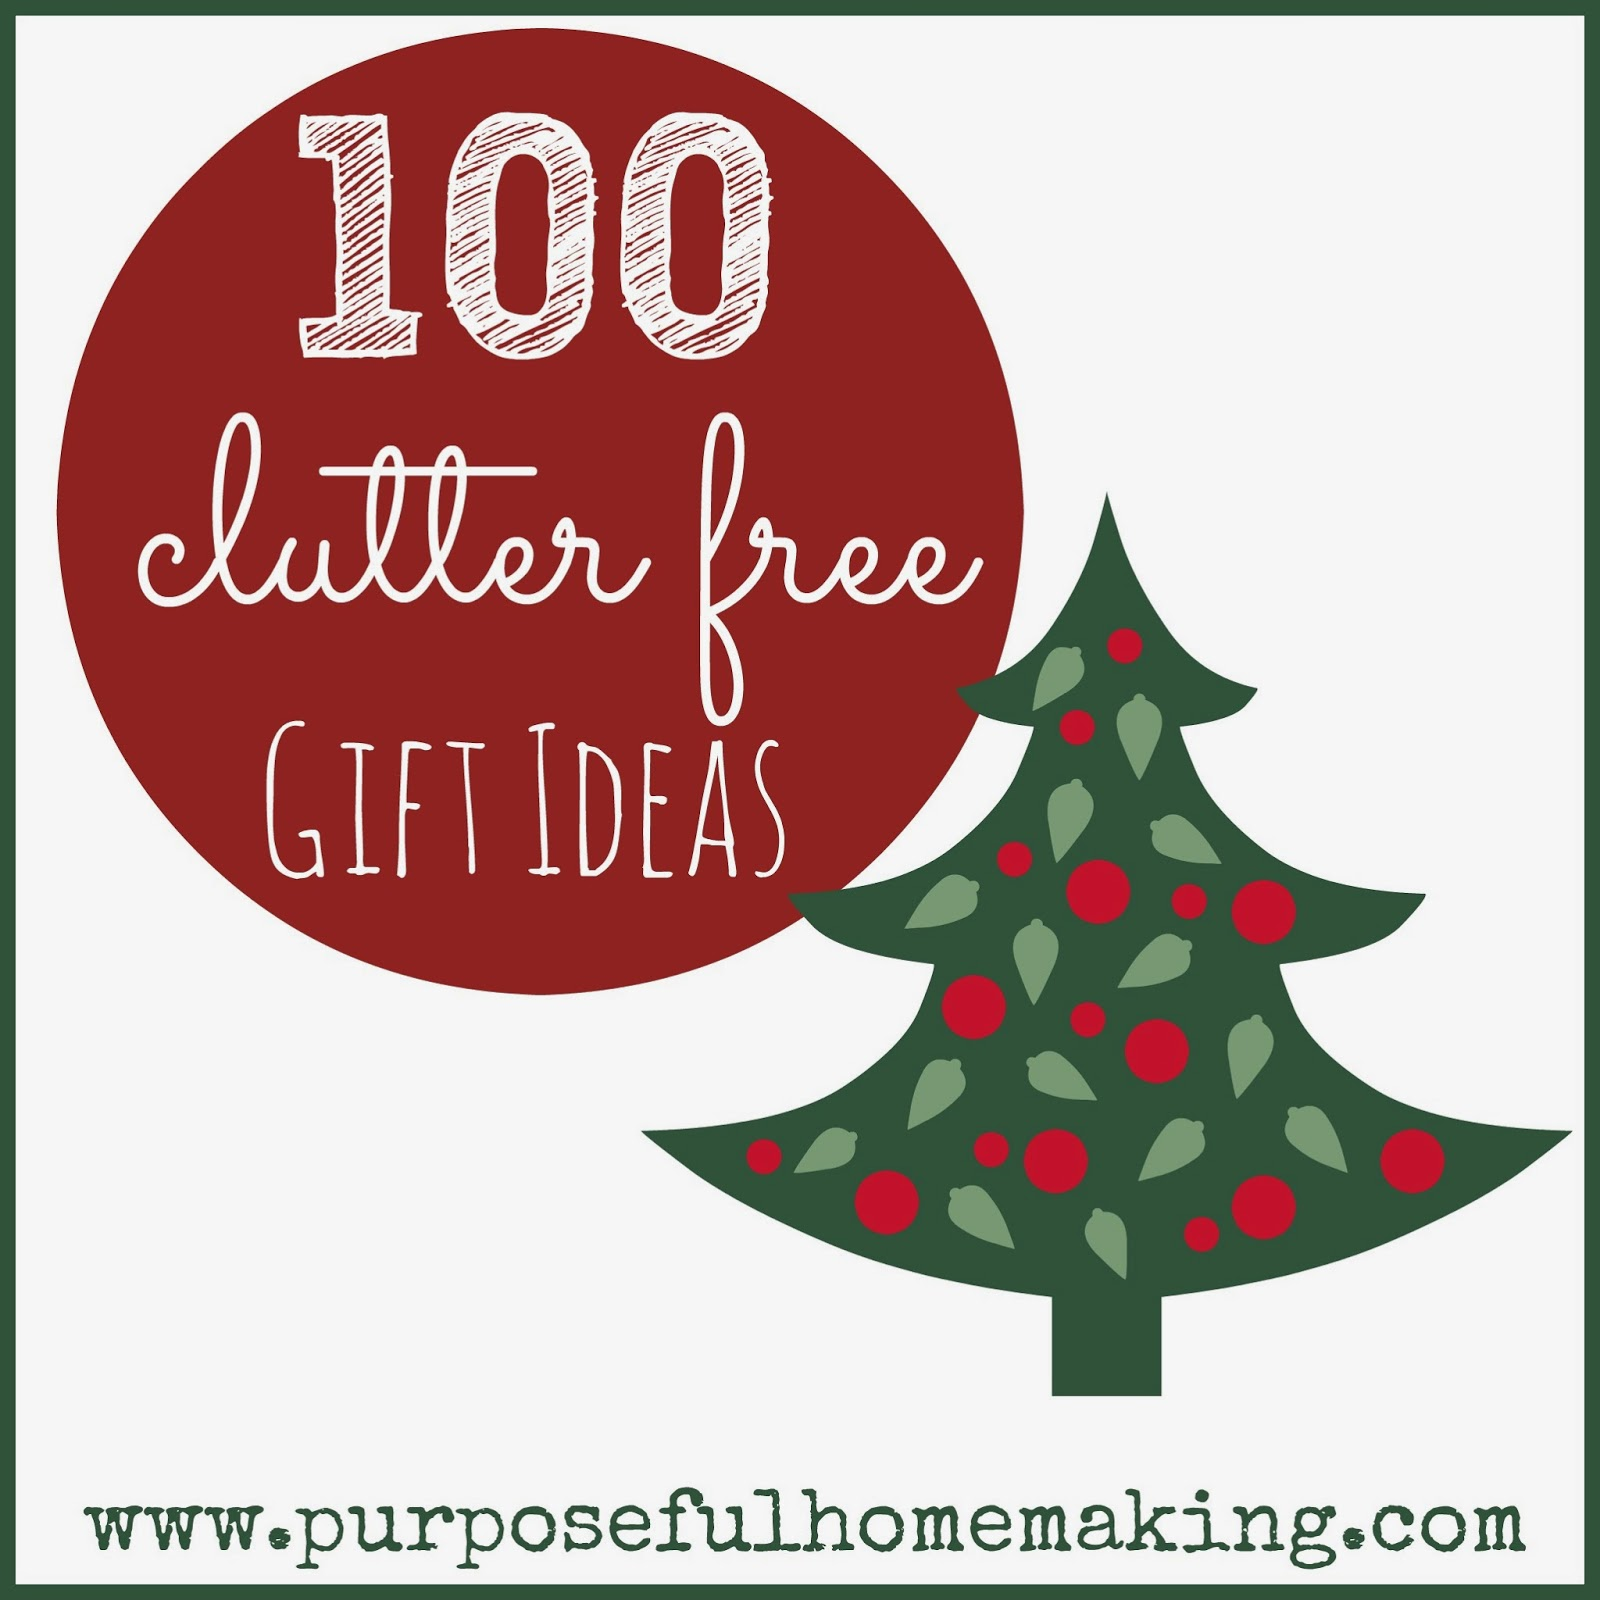 Clutter free christmas gift ideas